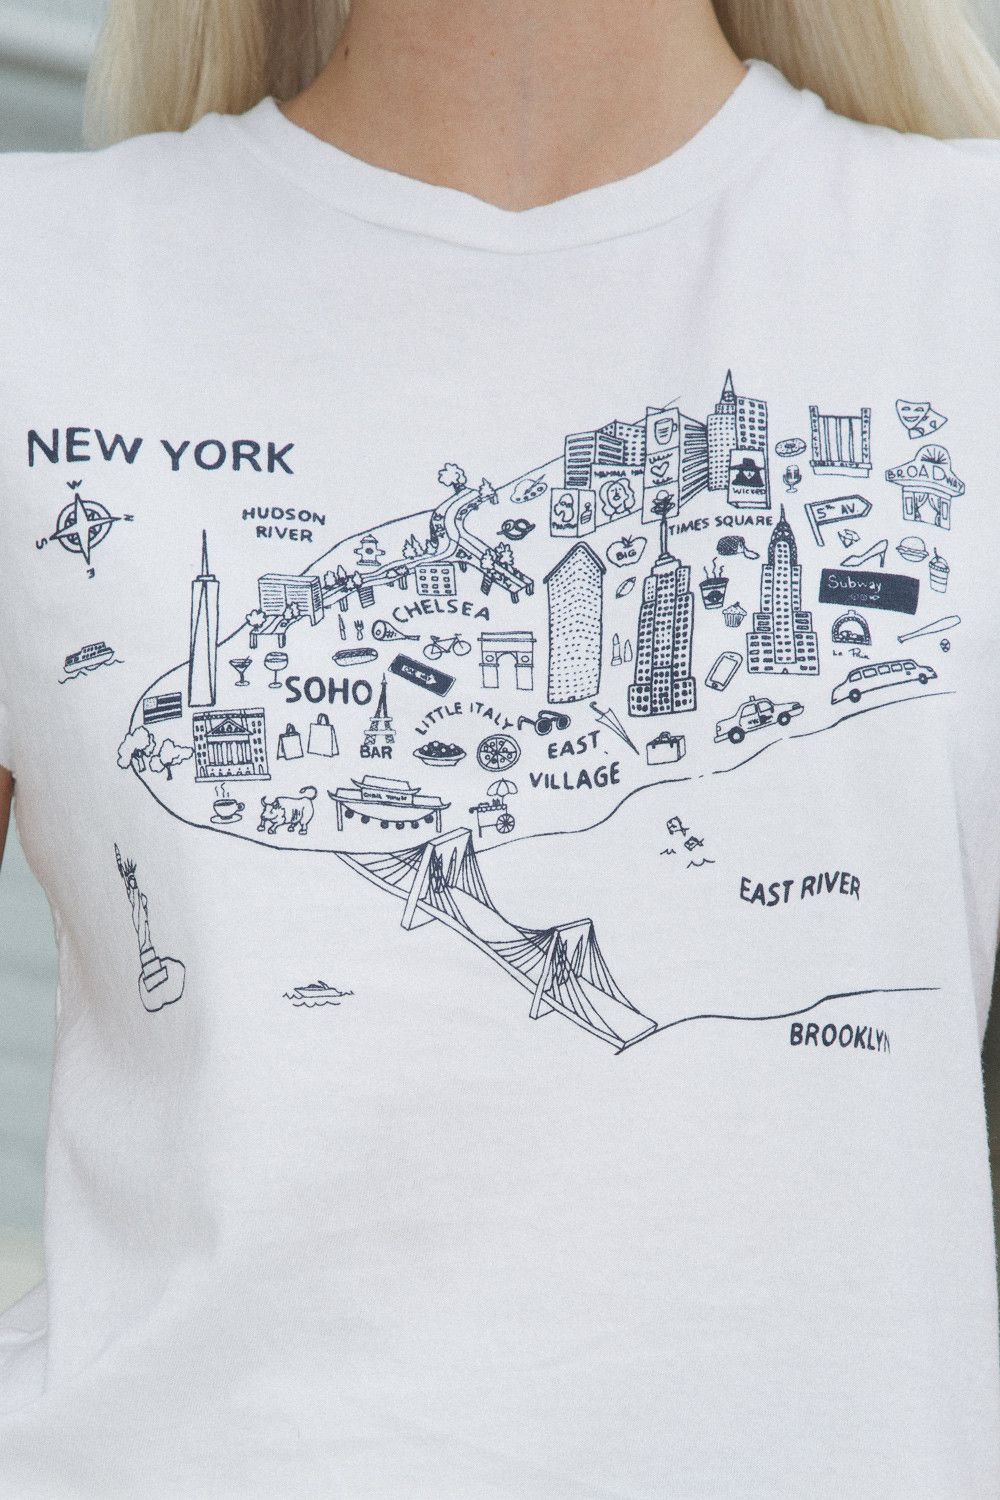 Brooklyn Subway Map Tees.Jamie New York City Map Top In 2019 Graphic Tees New York City